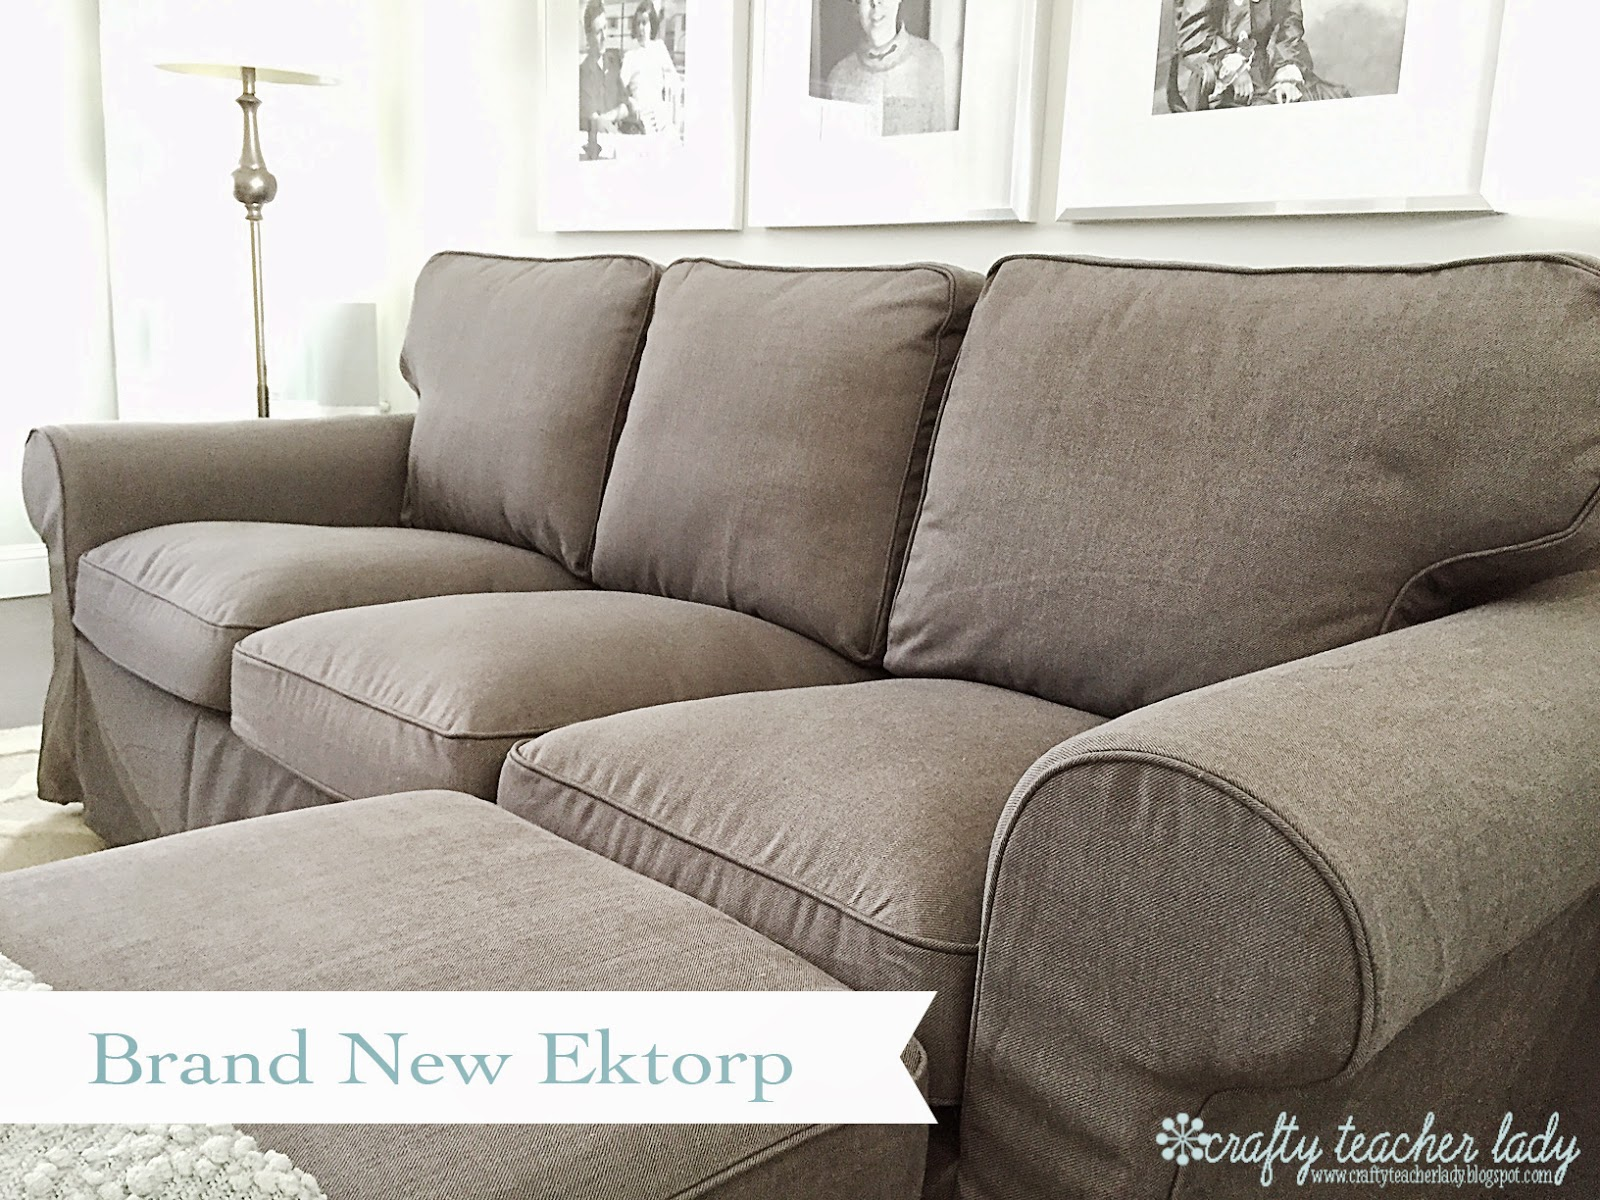 crafty teacher lady review of the ikea ektorp sofa series. Black Bedroom Furniture Sets. Home Design Ideas